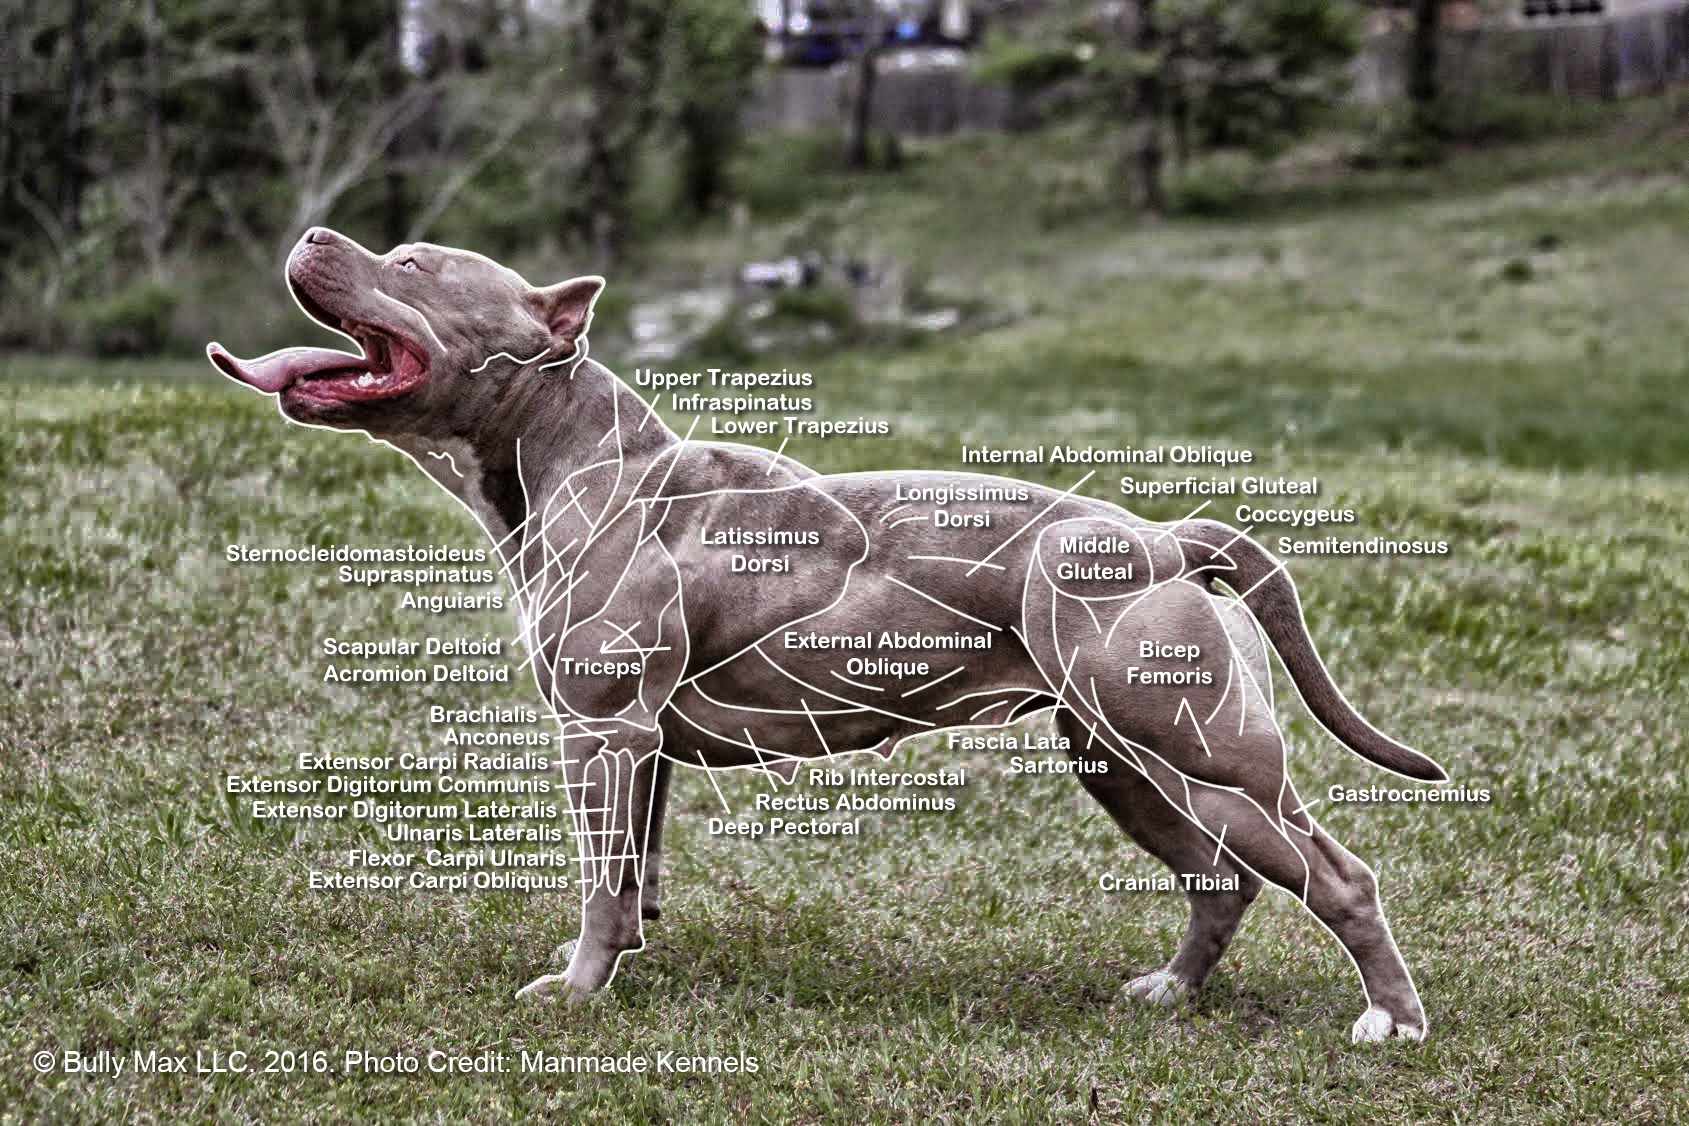 The Muscle Anatomy Of Dogs